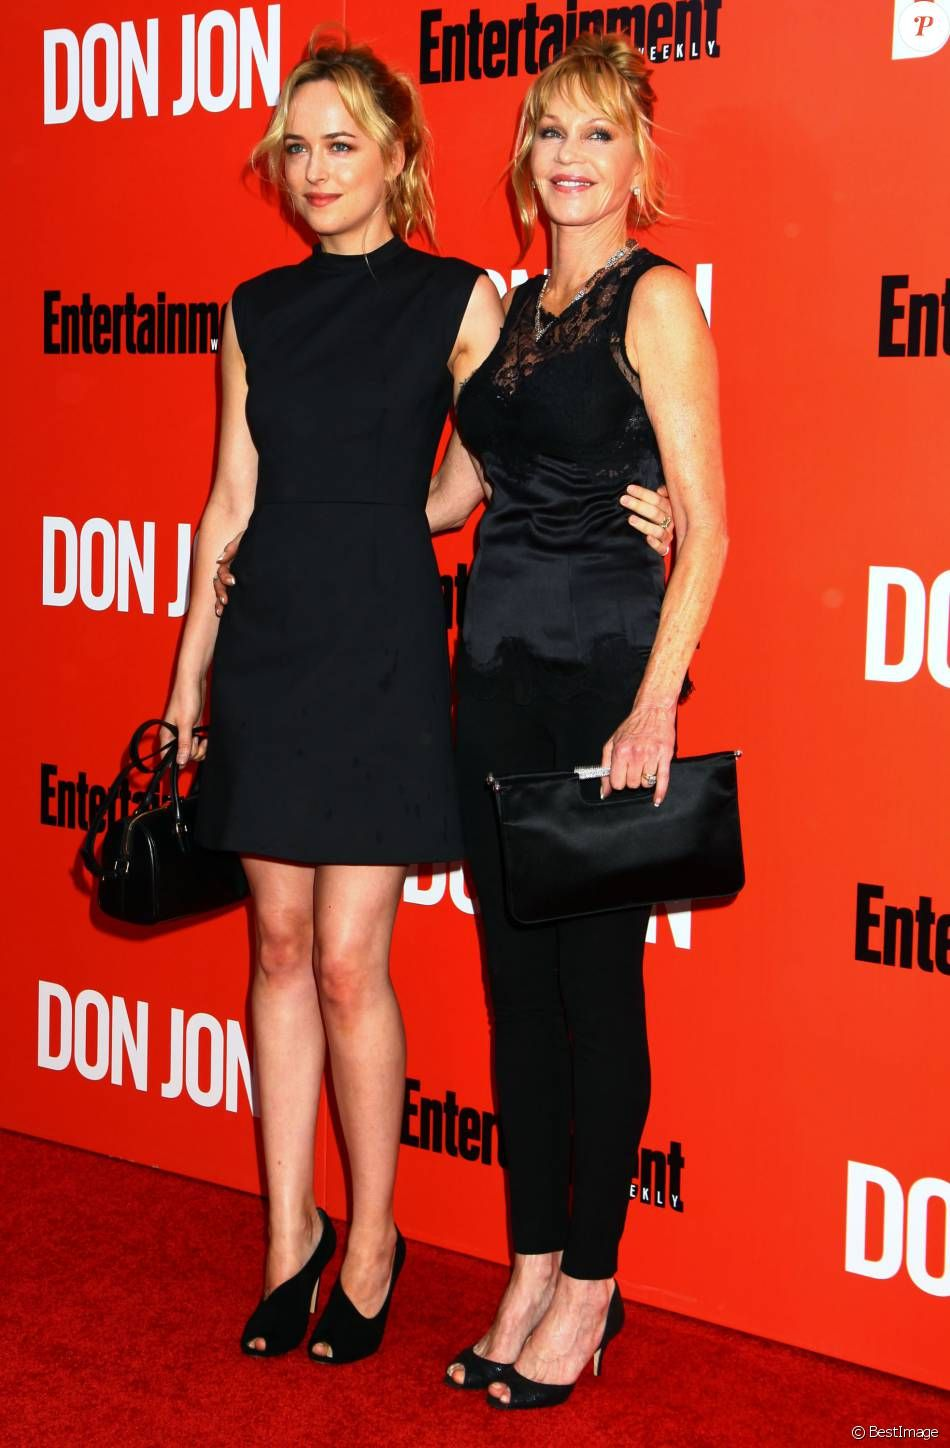 Dakota Johnson & her mother, Melanie Griffith.